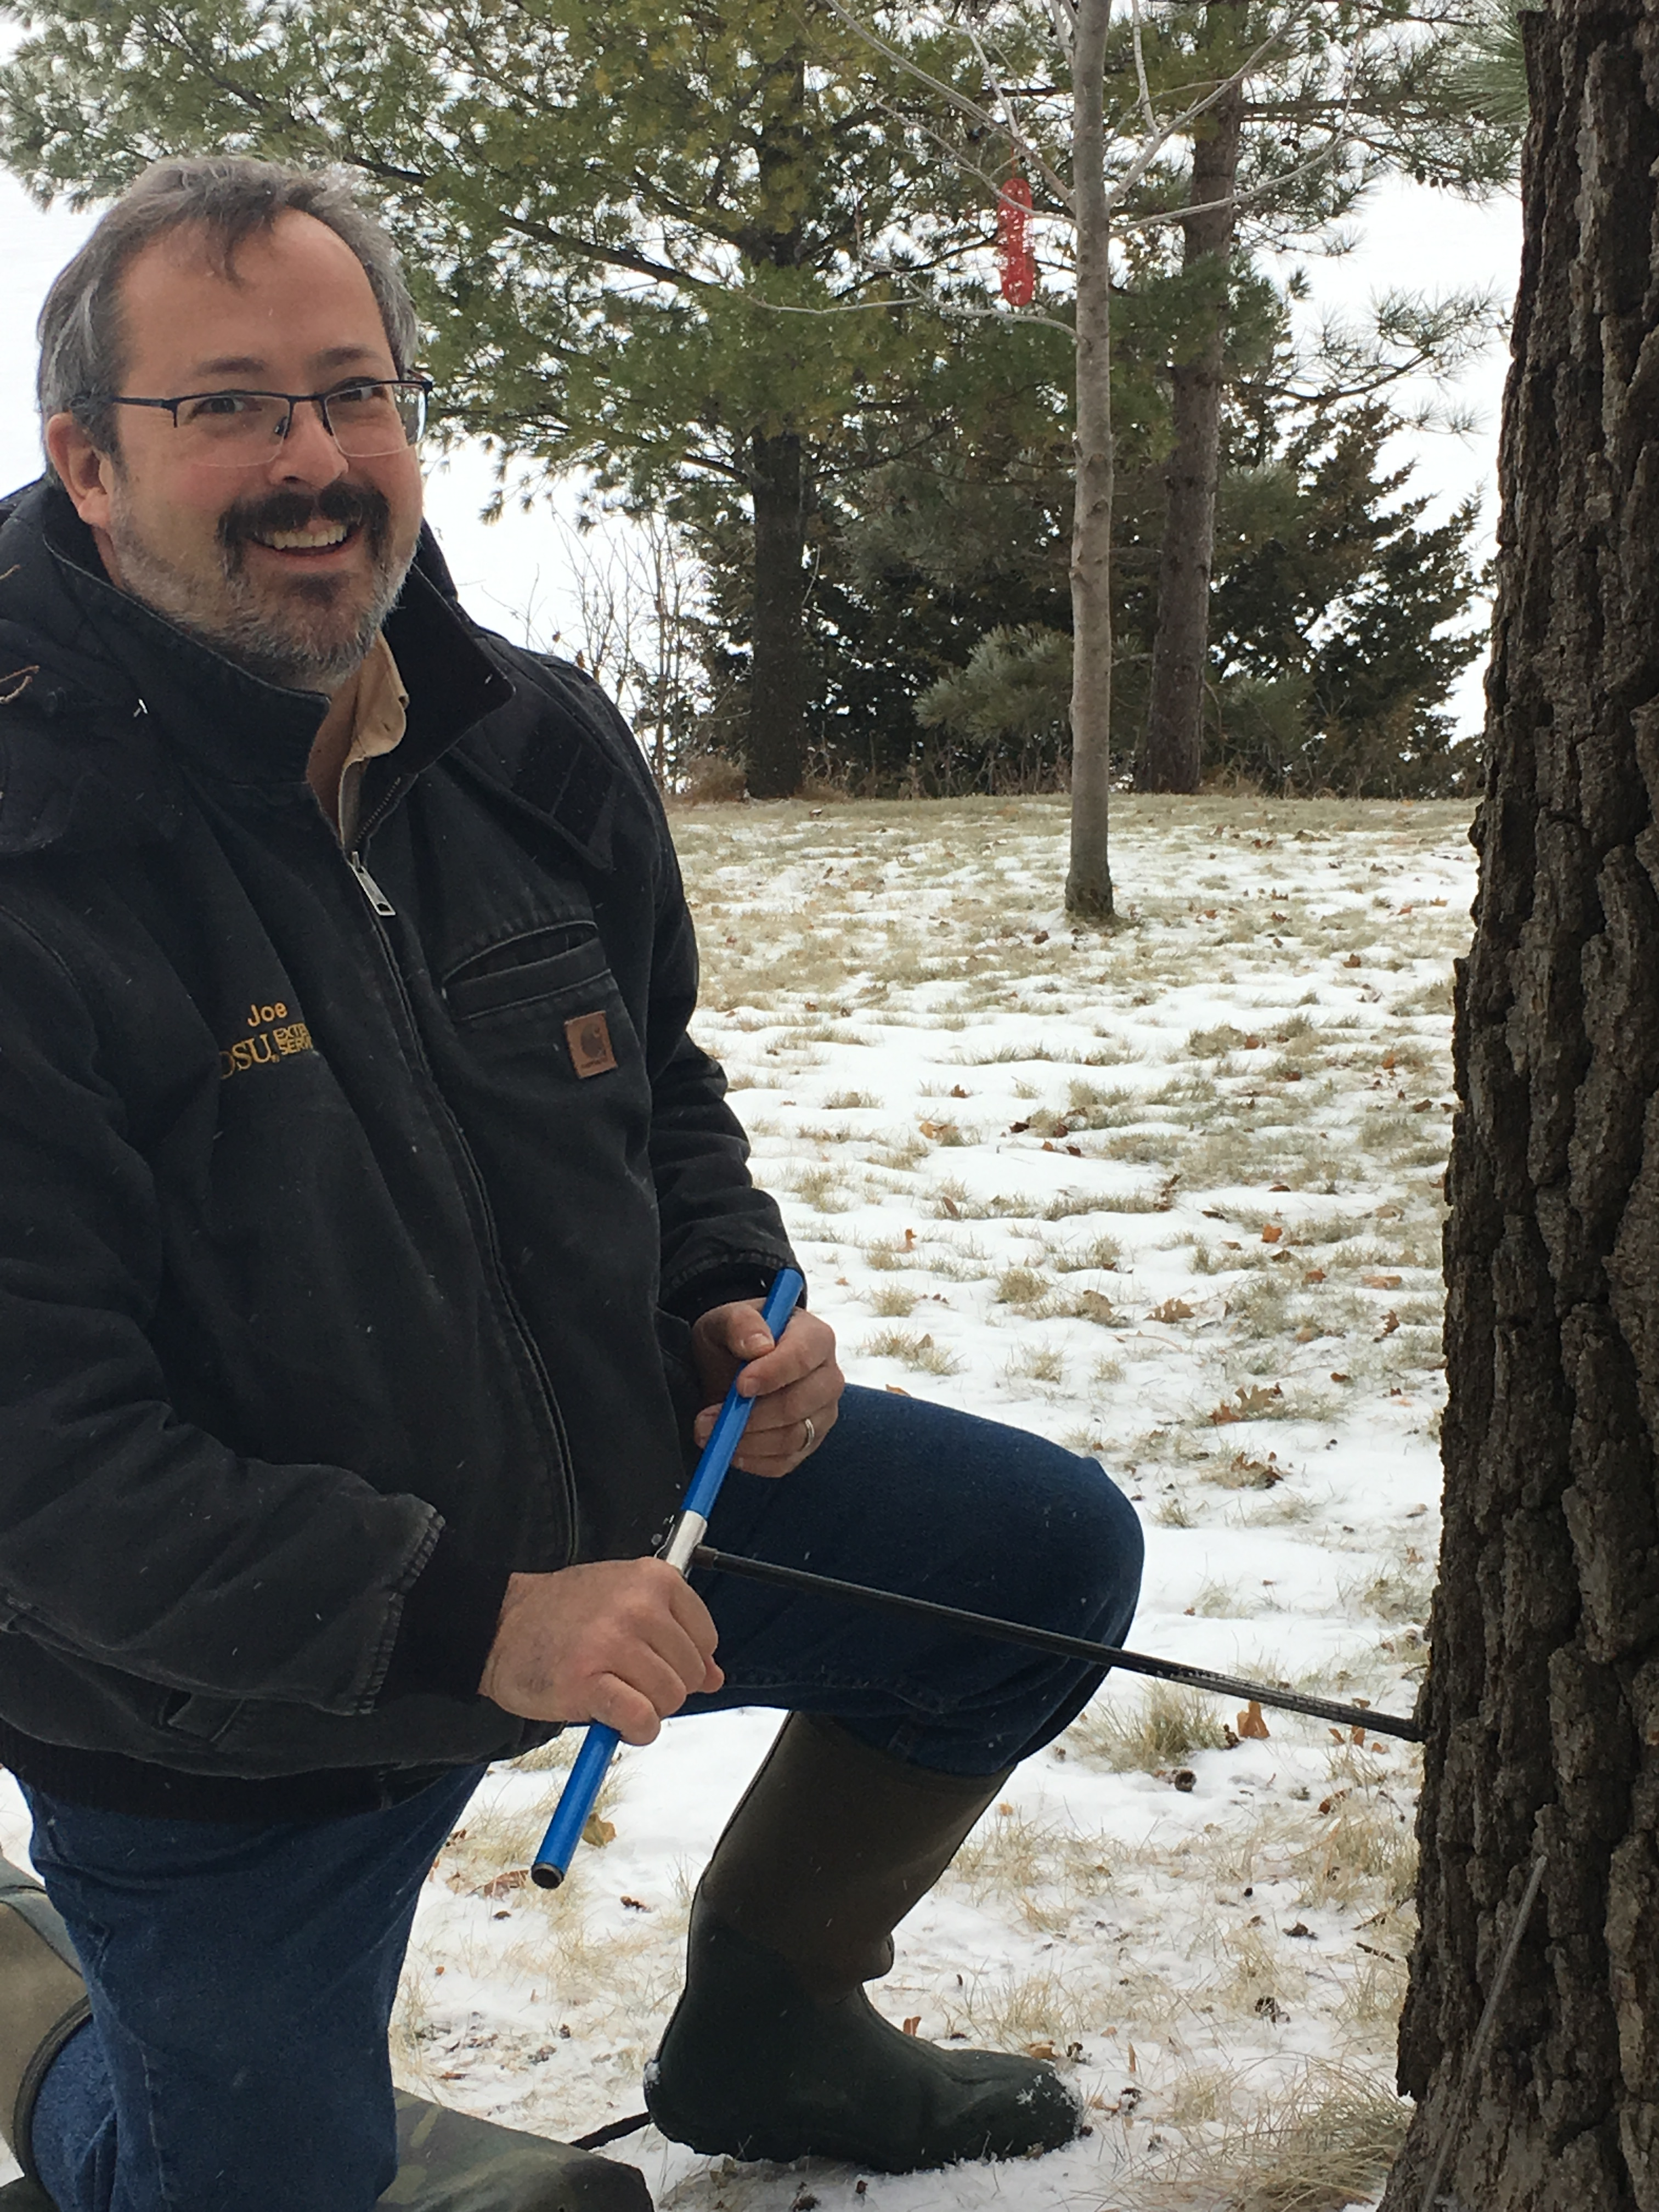 NDSU Extension forester Joe Zeleznik collects a sample from a bur oak along the Red River. (NDSU photo)